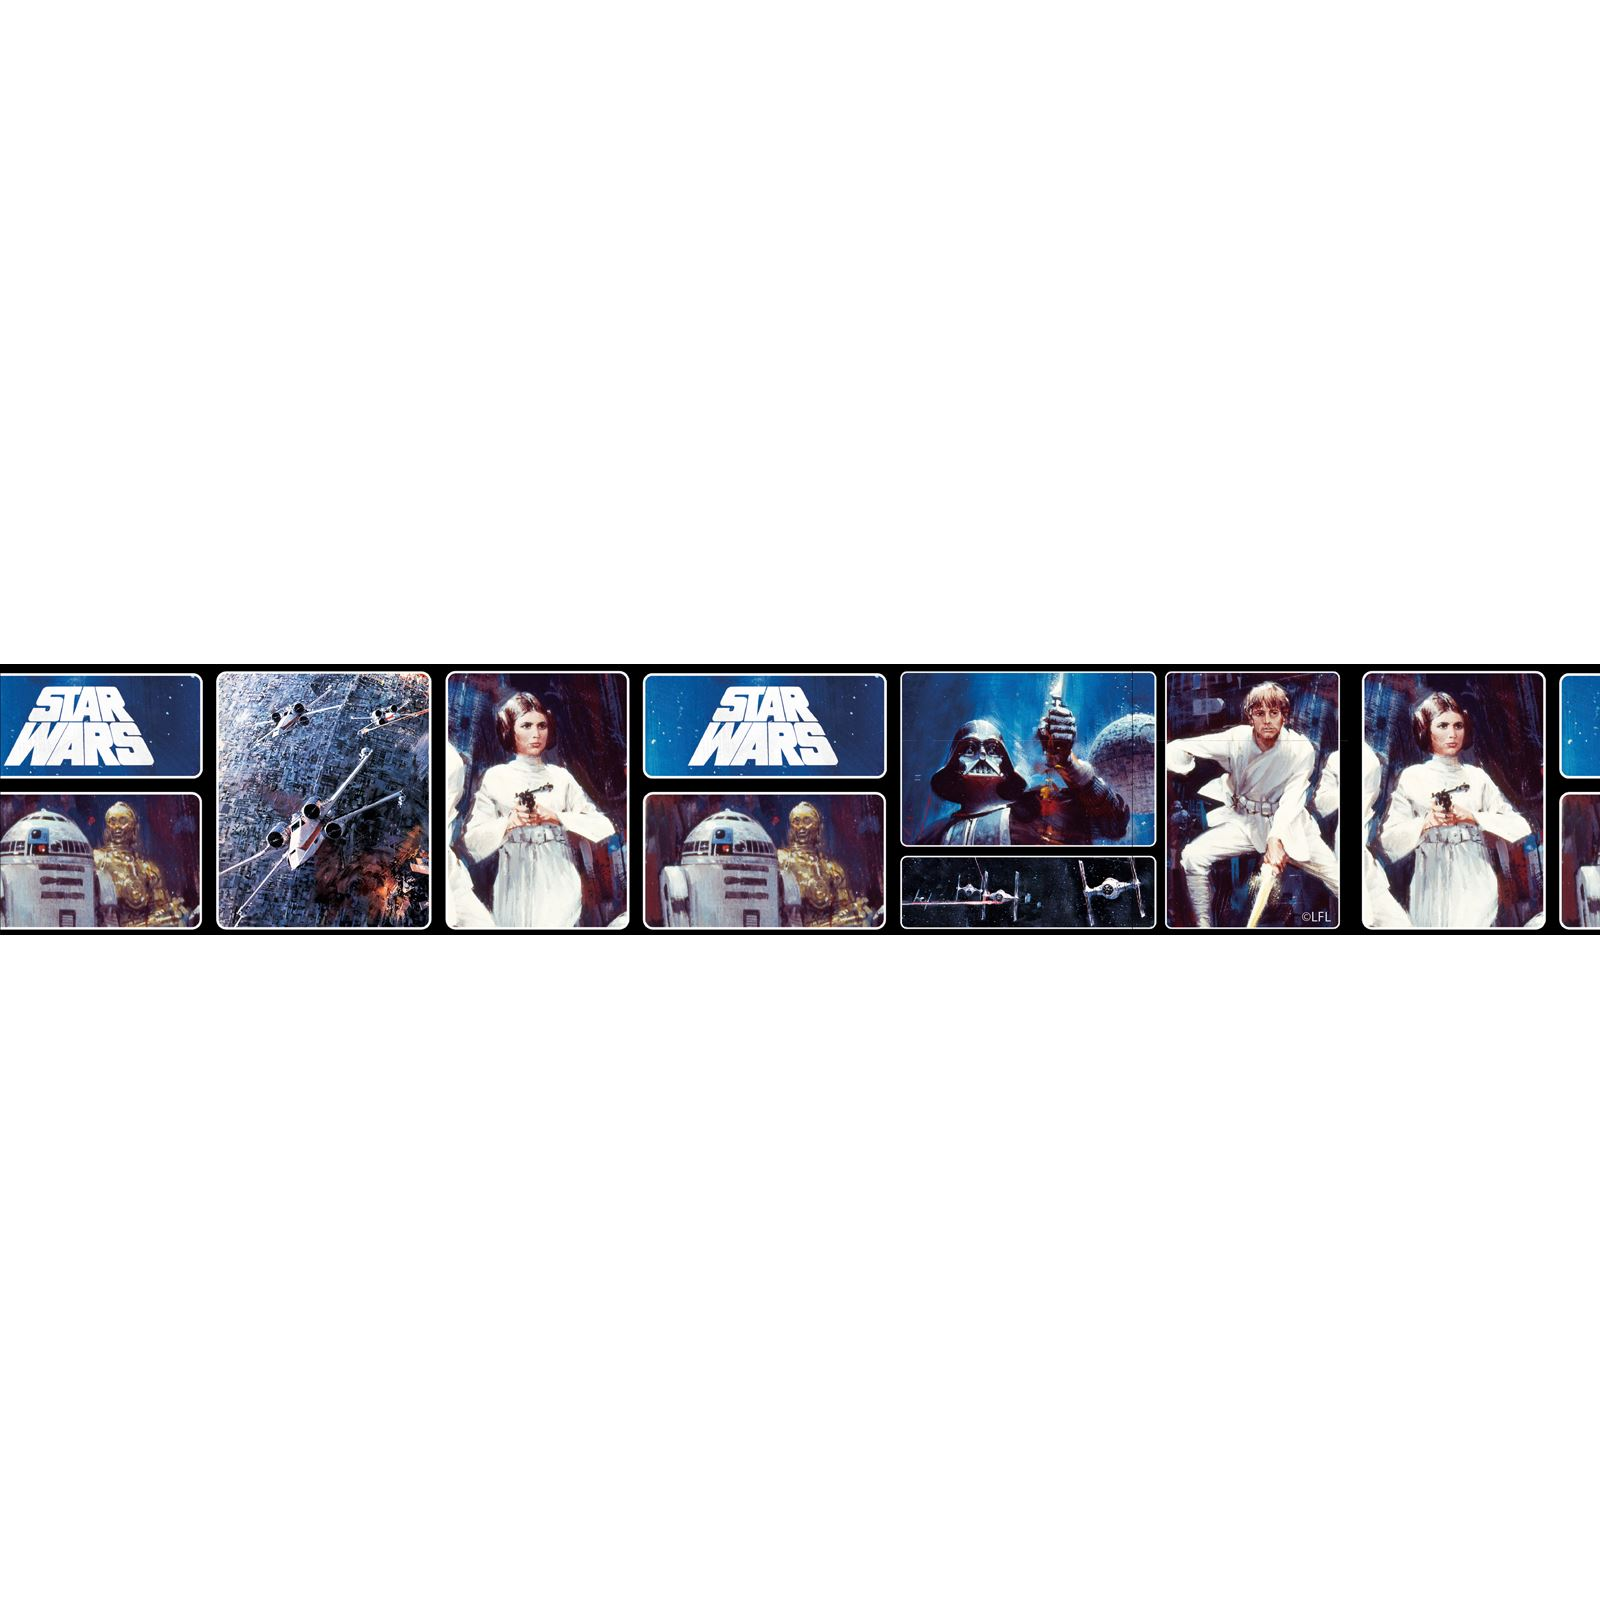 Star Wars Lego Wall Stickers Star Wars Wallpaper Borders 5m Various Styles Designs New